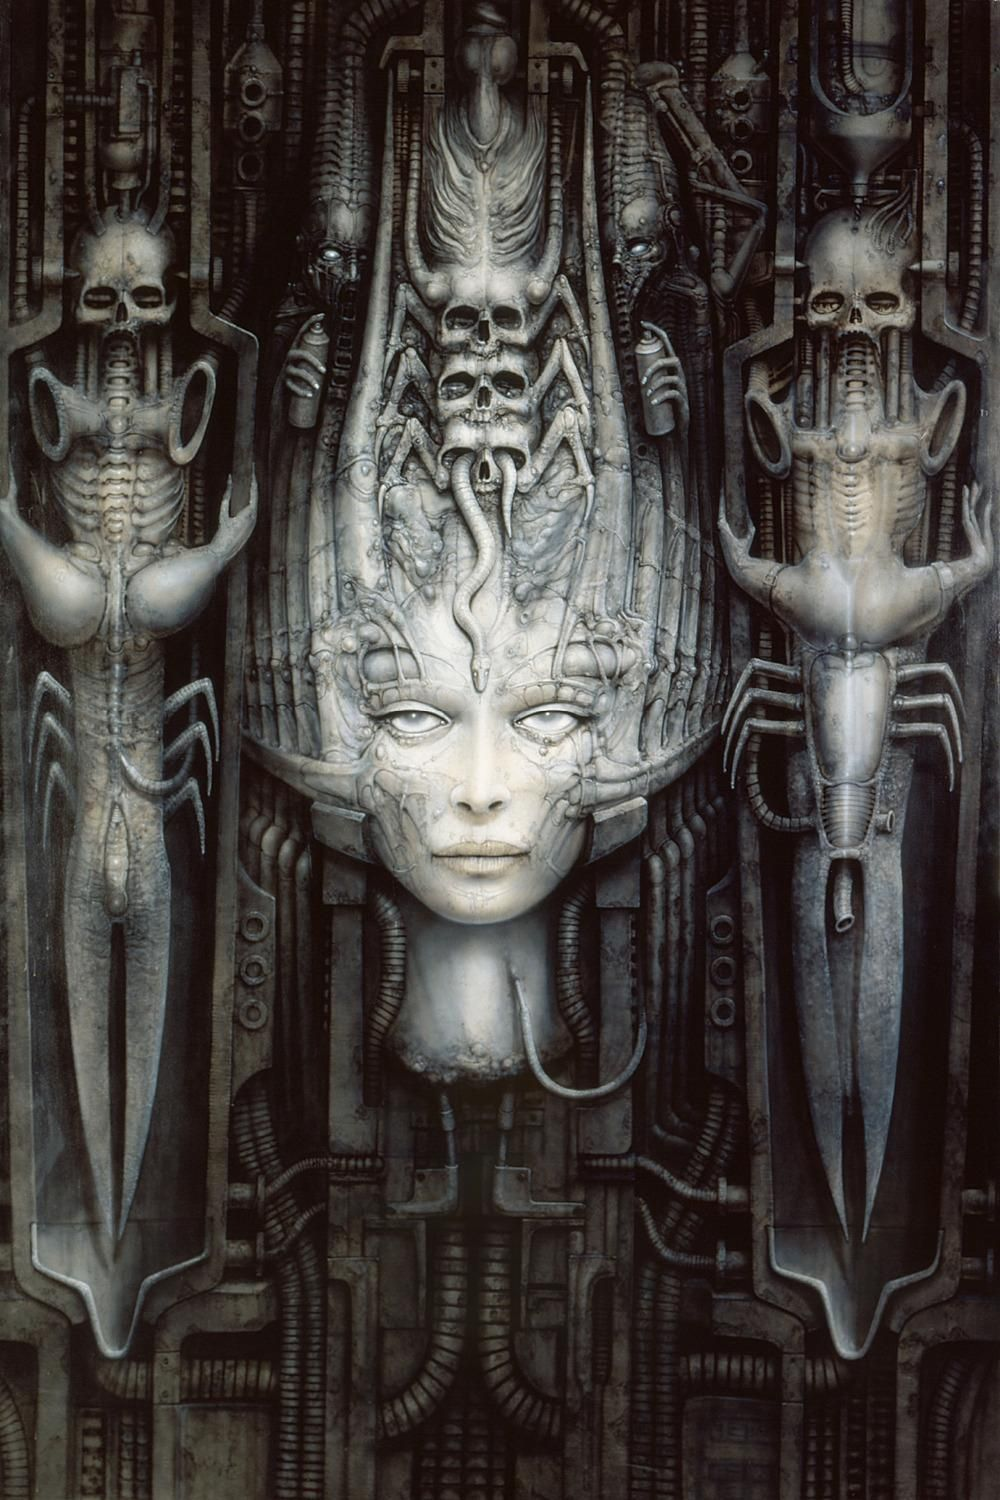 P0282 H.R.Giger Fantasy Art Alien Necronomicon Home Decor prints for Poster 40x60cm